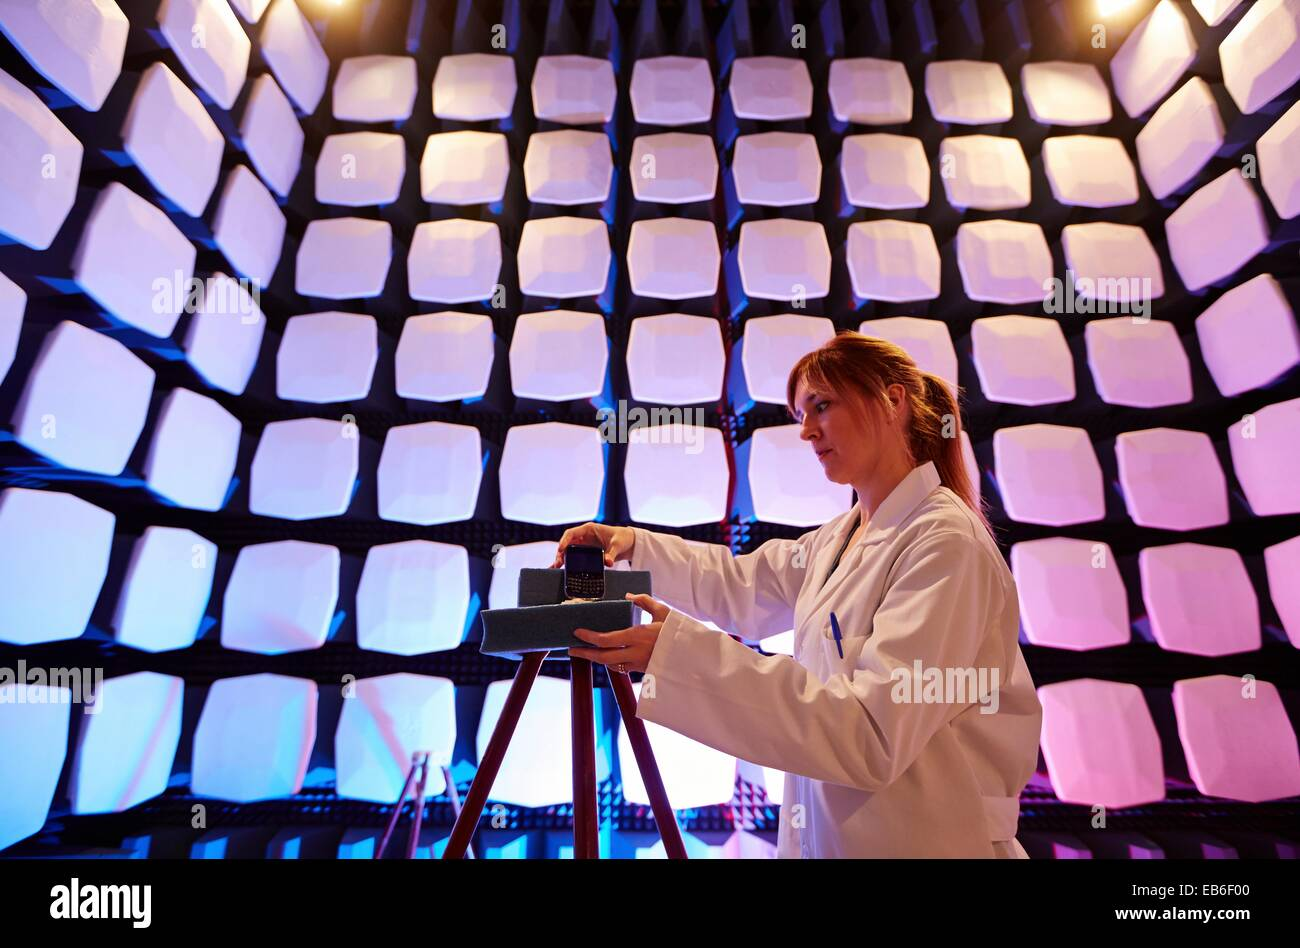 Anechoic chamber emc telecom lab certification low voltage stock anechoic chamber emc telecom lab certification low voltage electrical electronic products technological services to 1betcityfo Image collections